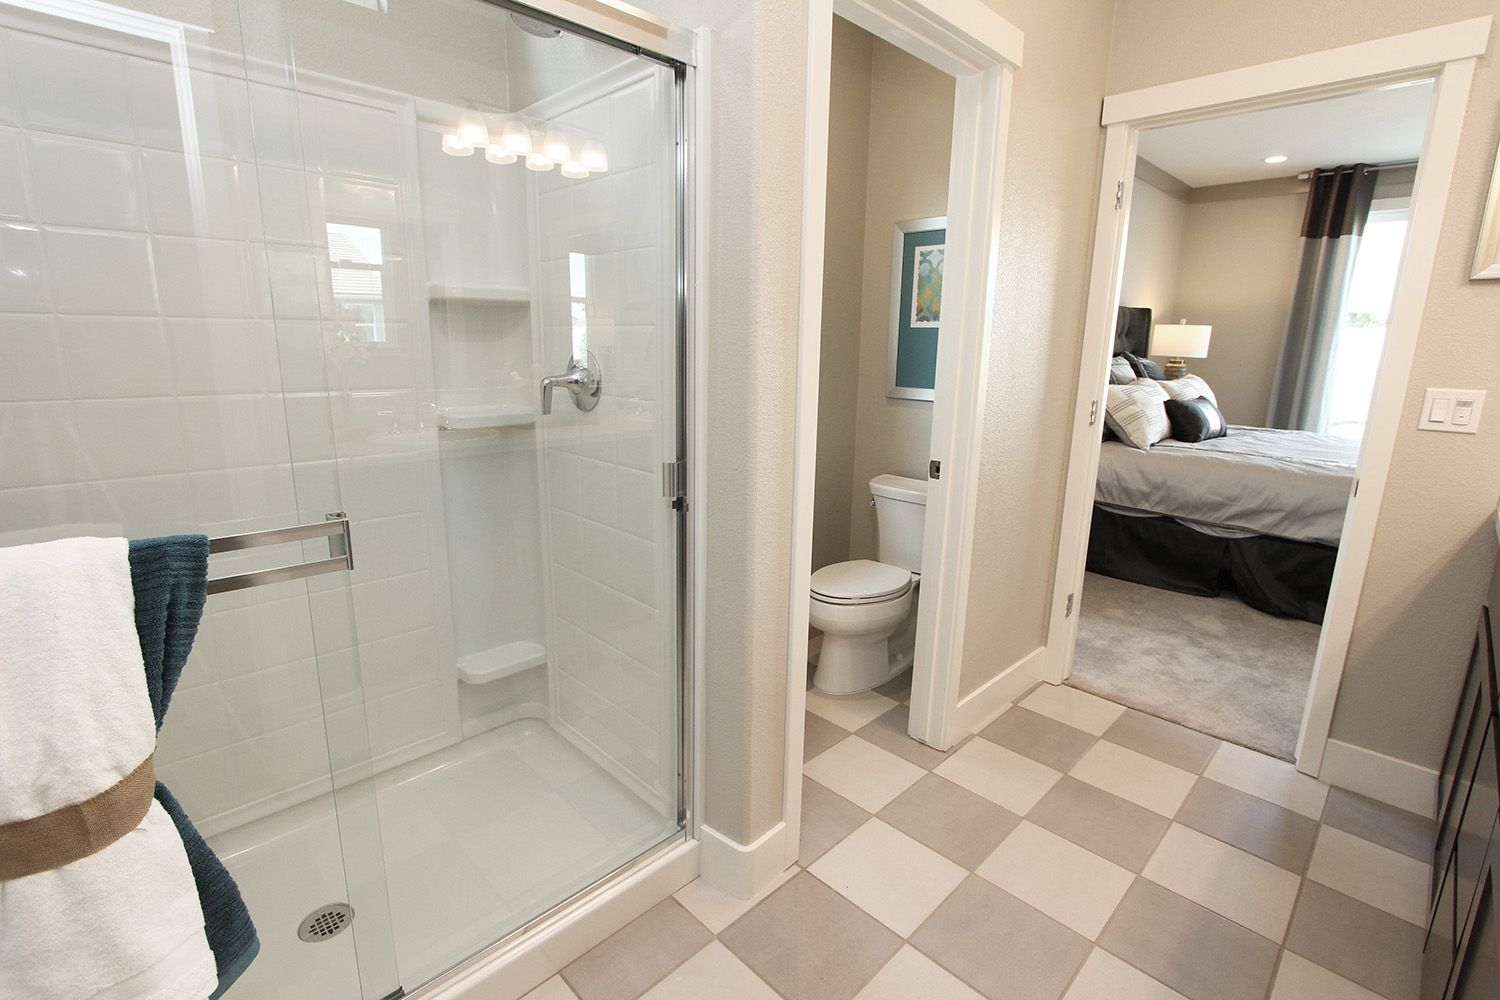 Bathroom featured in The Avila By Anderson Homes in Merced, CA